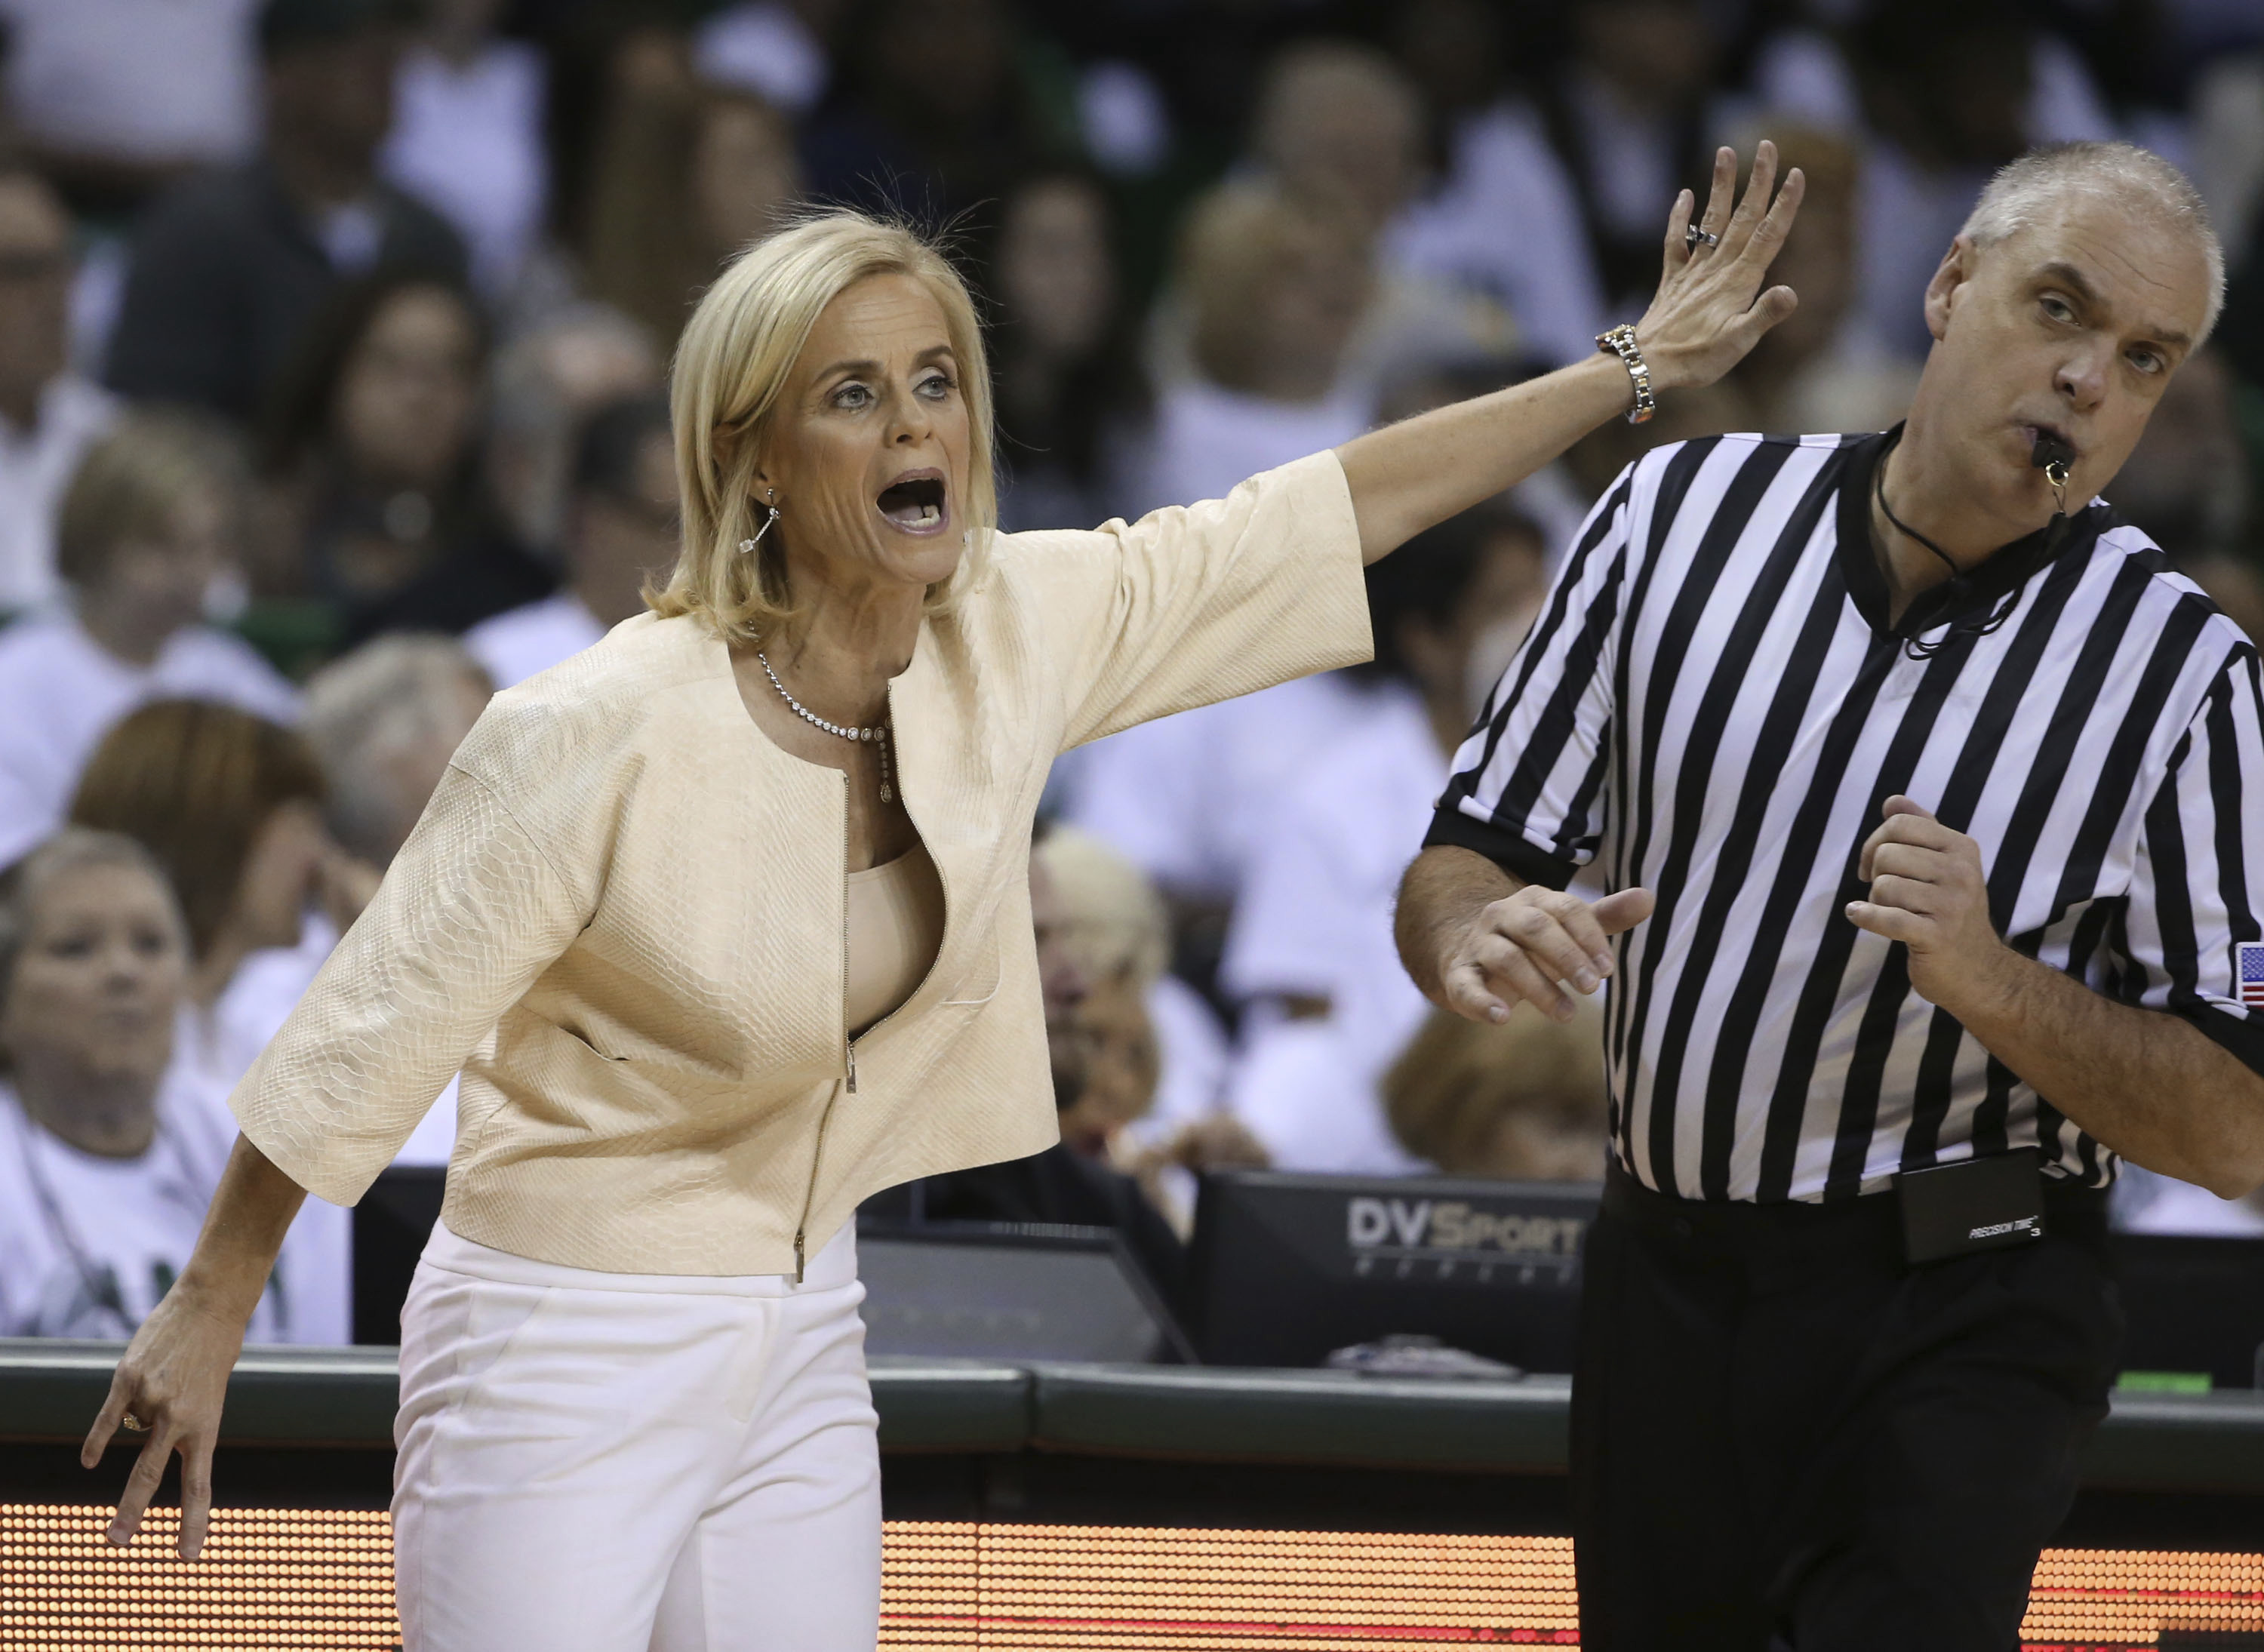 Baylor head women's coach Kim Mulkey calls in a play during the second half of an NCAA college basketball game against Texas Tech, Saturday, Feb. 25, 2017, in Waco, Texas. Baylor won 86-48. (AP Photo/Rod Aydelotte)